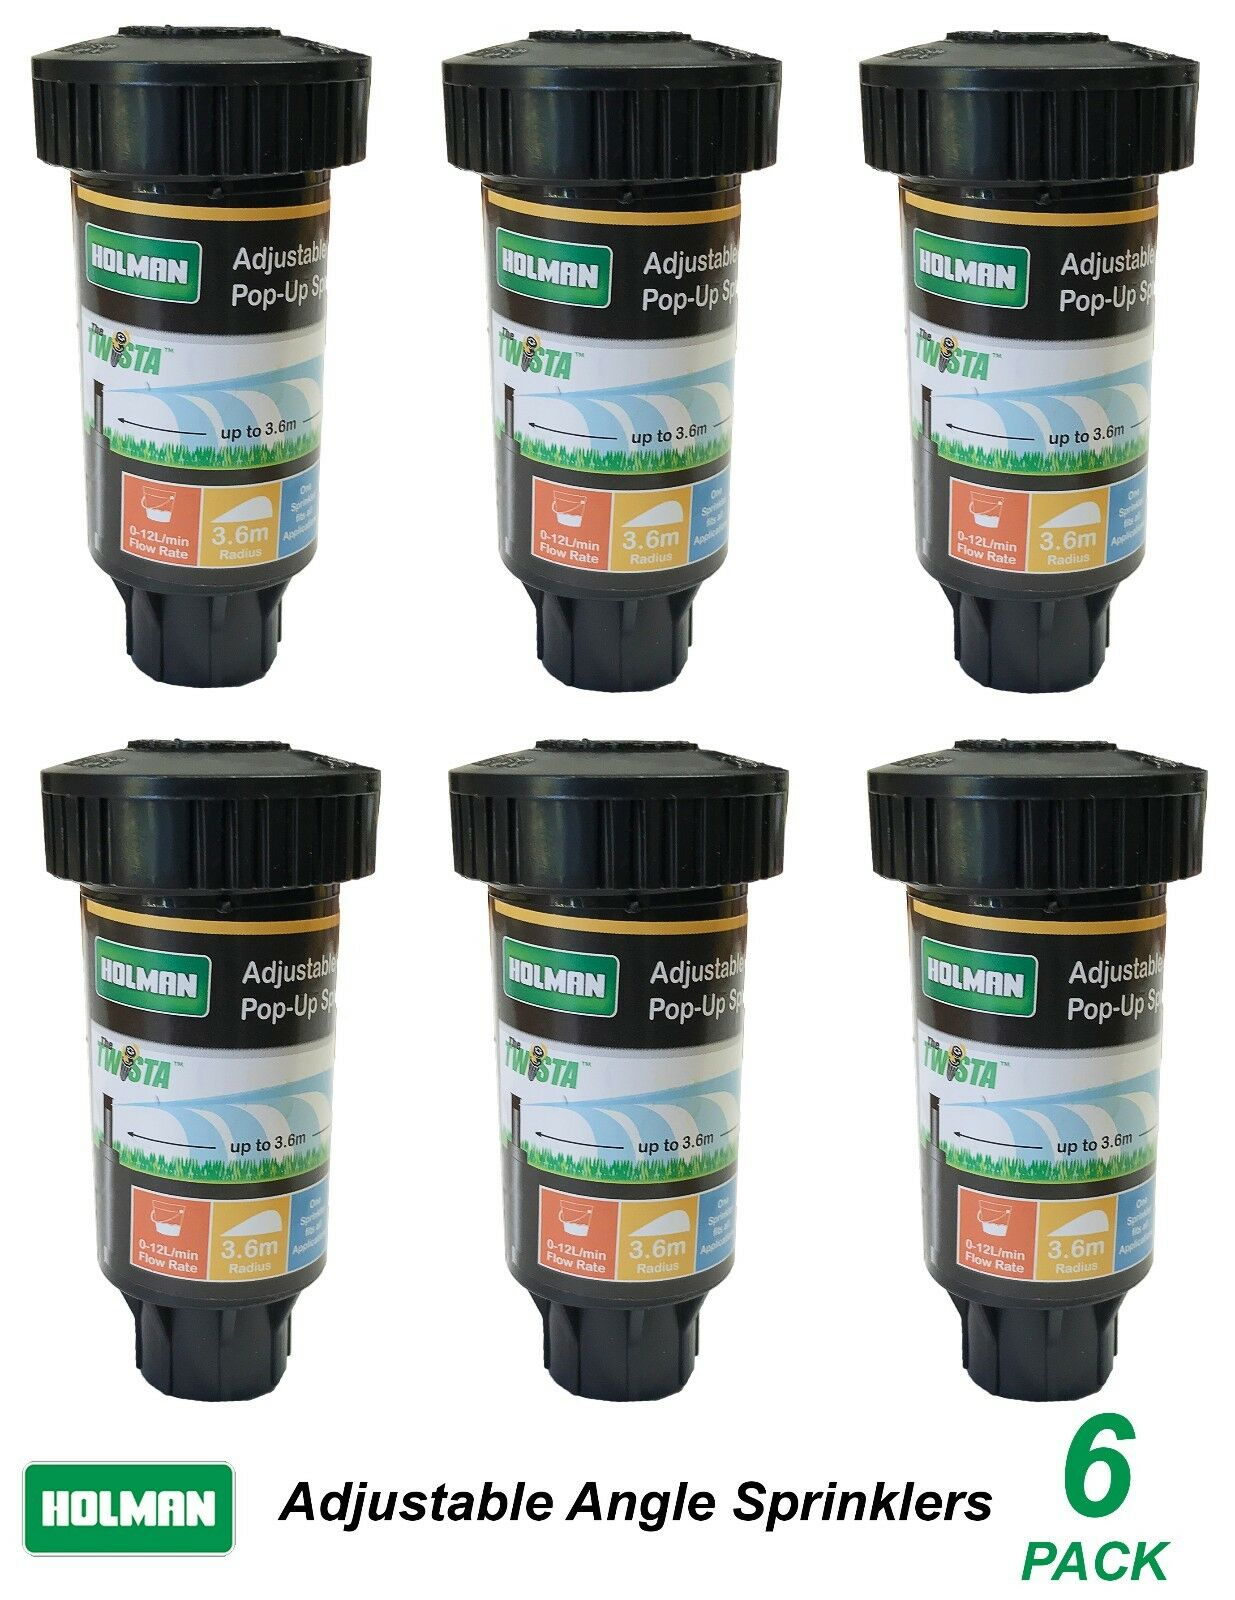 6 Pack x Popup Sprinklers with Adjustable Angle Universal 3.6m Radius Pop-Up